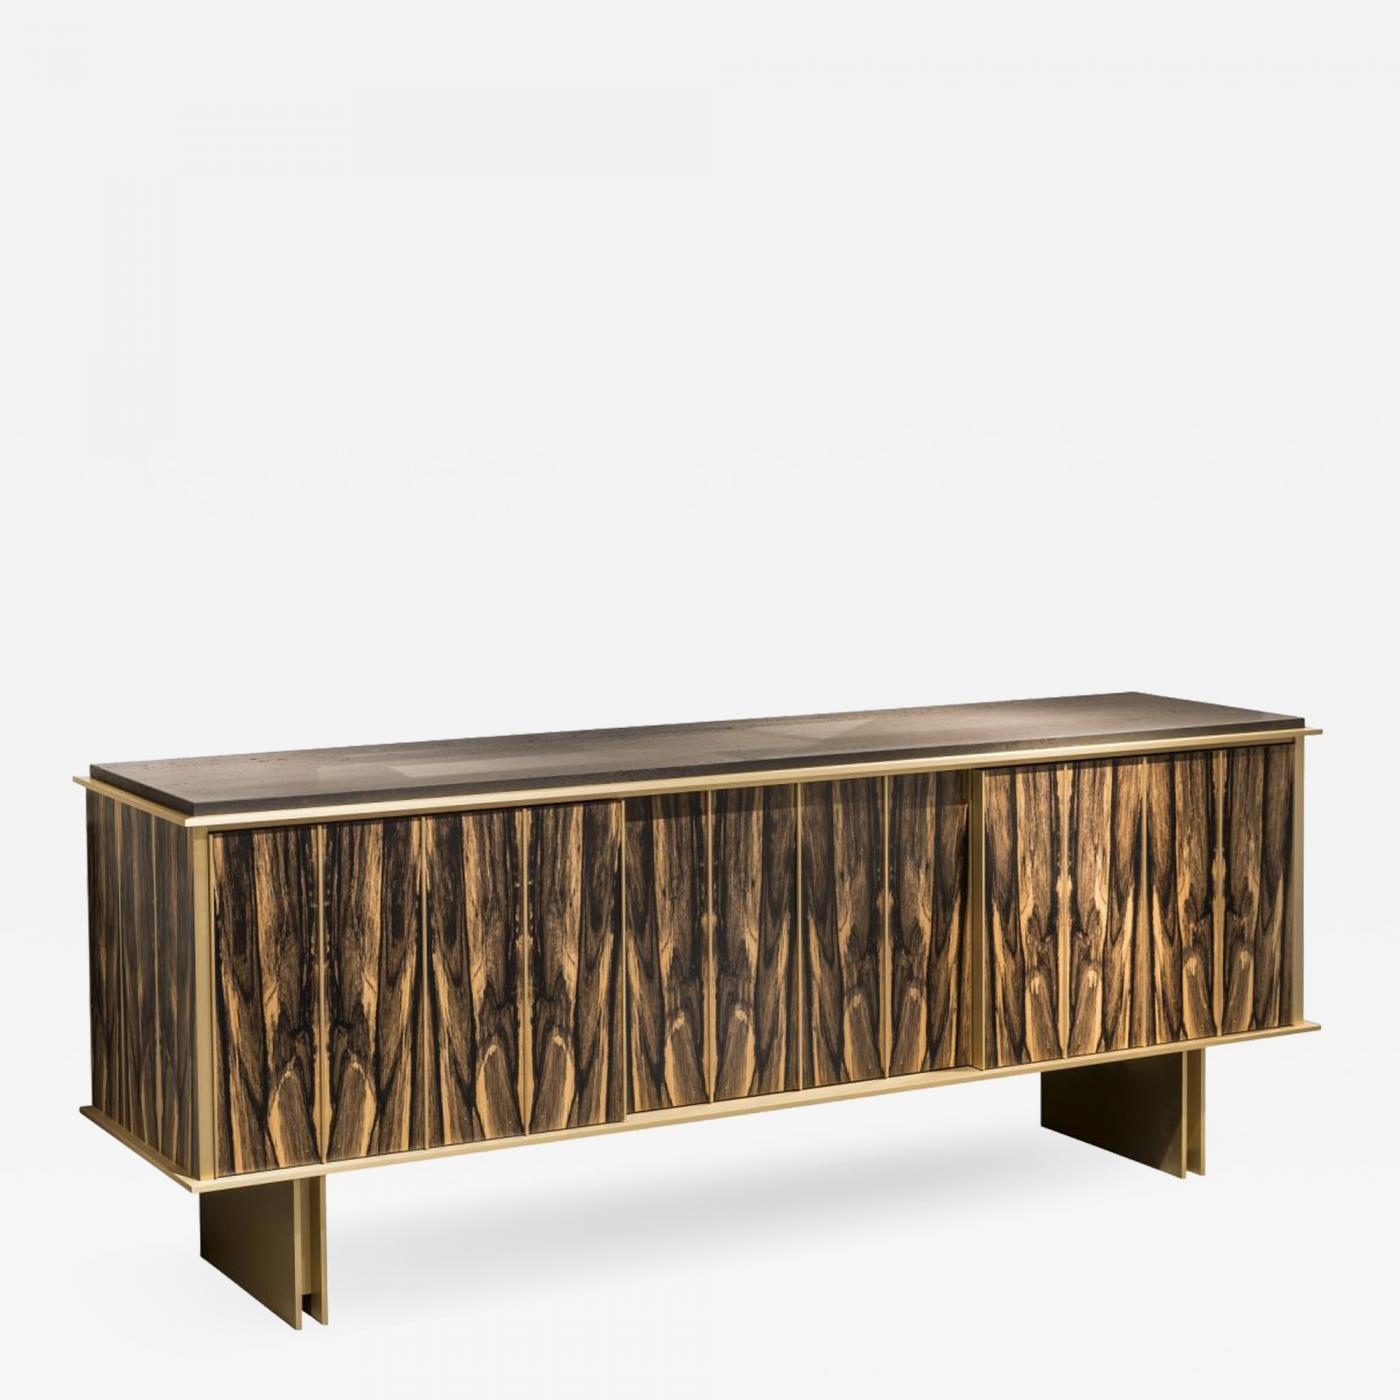 Meubles Langlais Galerie Negropontes Plumage Sideboard